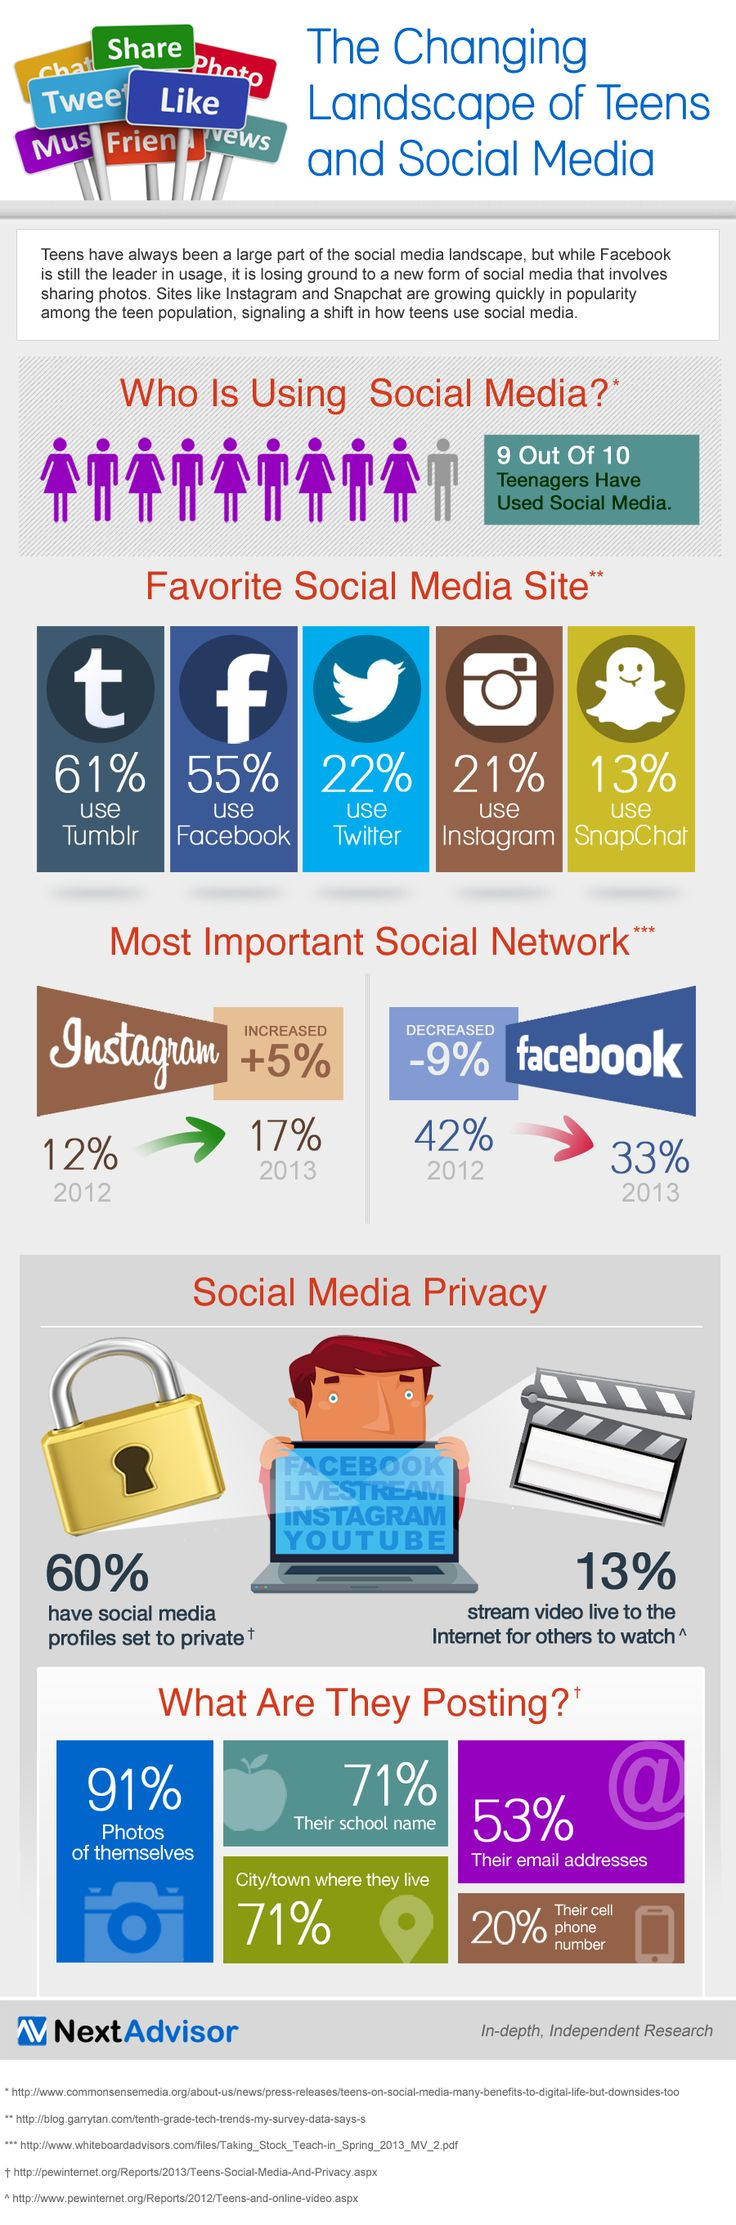 9 out of 10 teens are active on social media—but there's been a shift in social network is most important to them. New #infographic from NextAdvisor.com